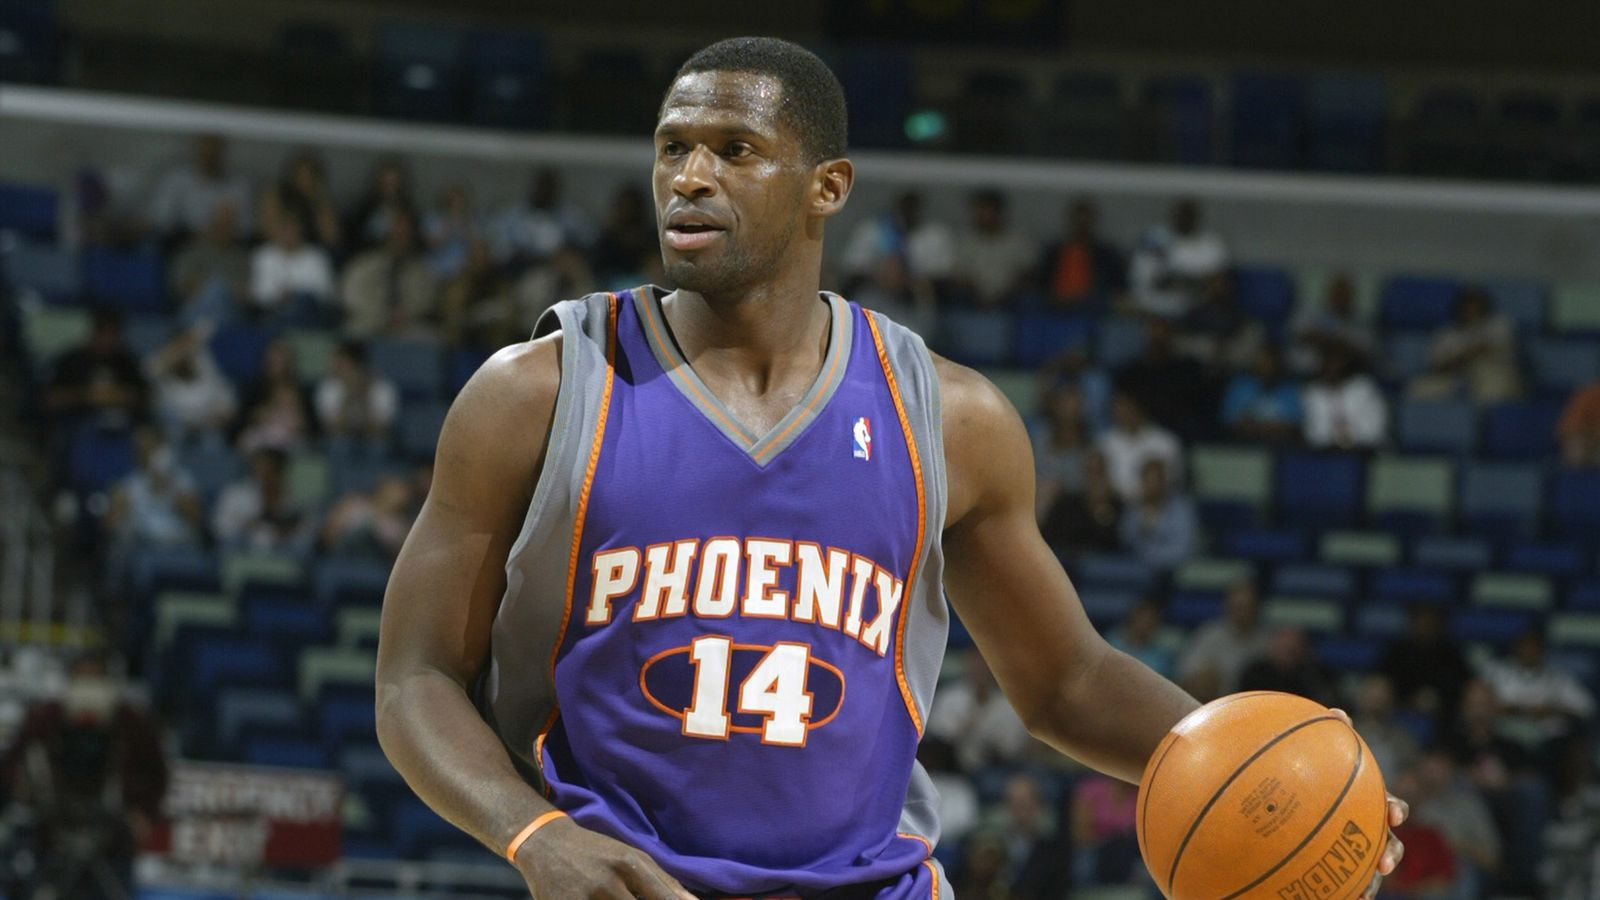 Remember when Antonio McDyess dumped the Phoenix Suns in a